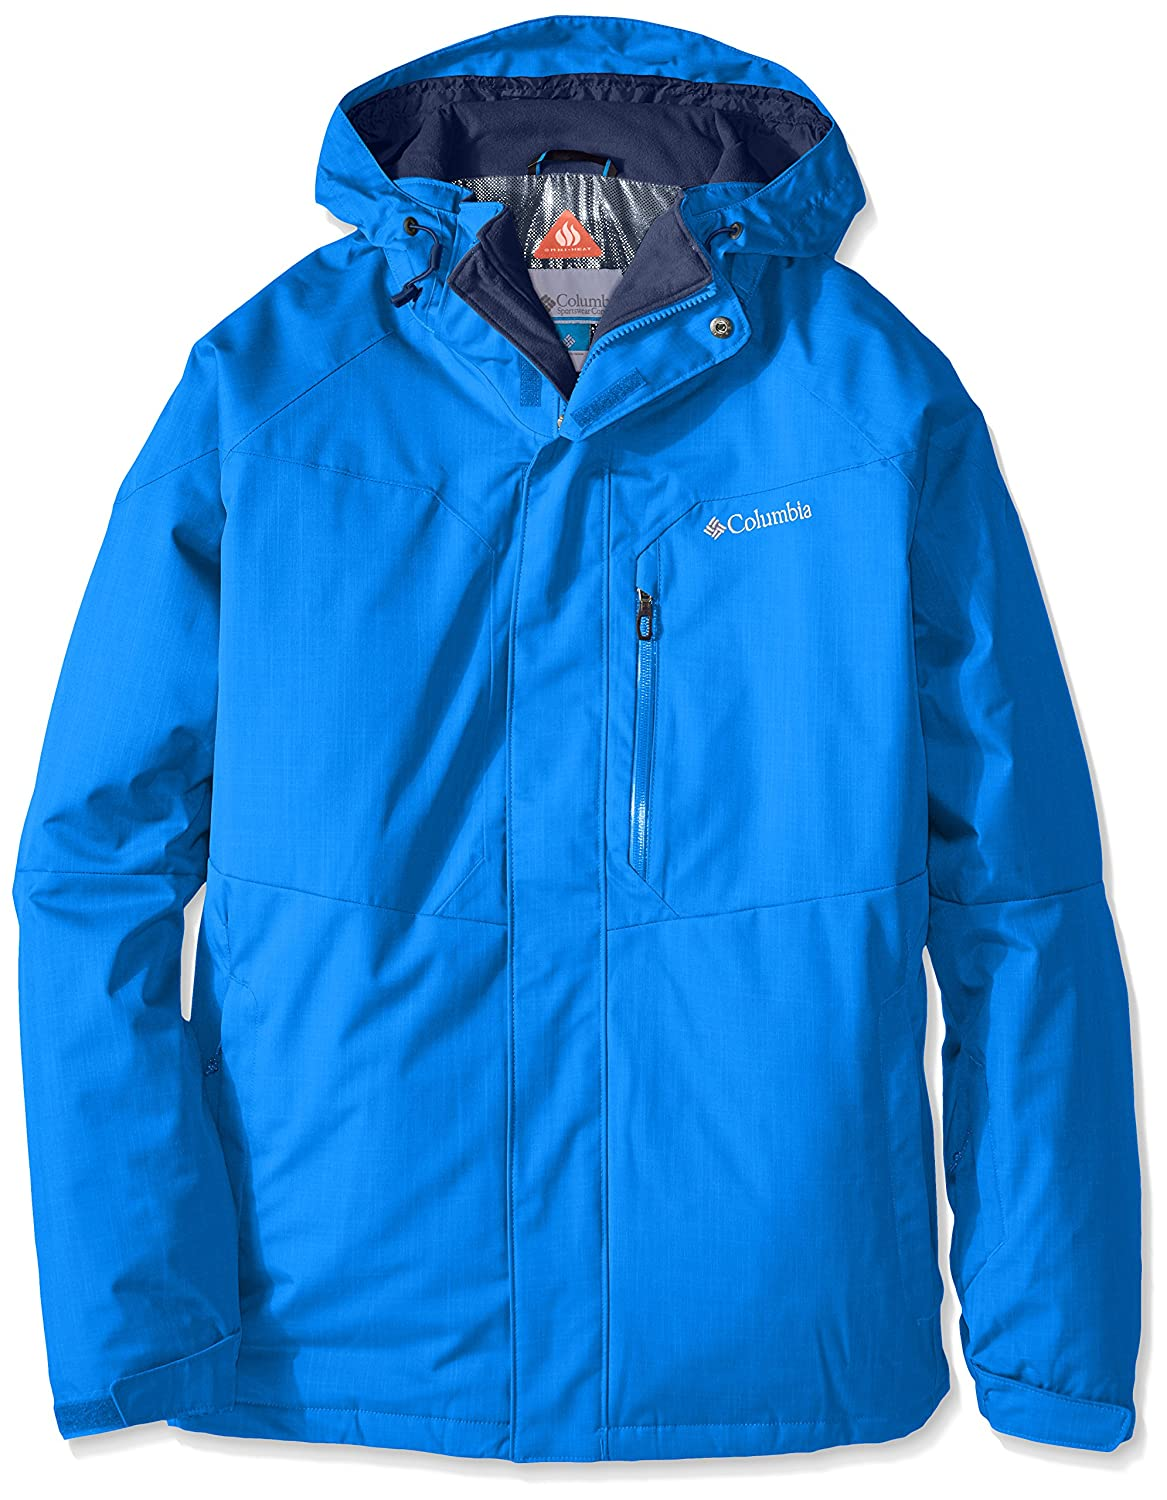 1b5a3f90 Amazon.com: Columbia Men's Alpine Action Jacket: Clothing